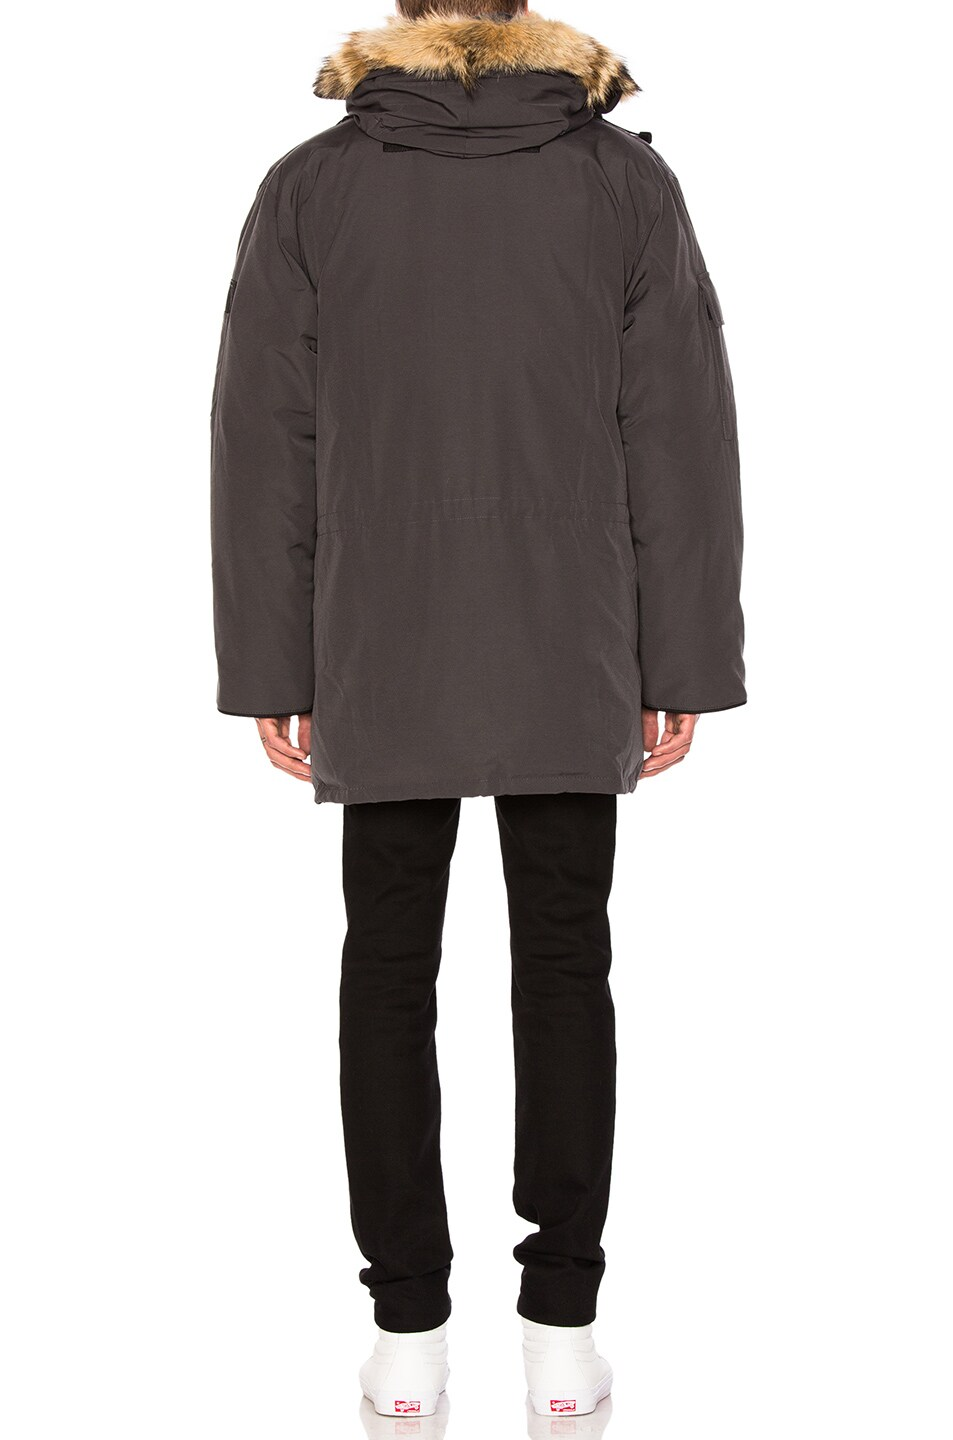 Image 4 of Canada Goose Expedition Parka in Graphite